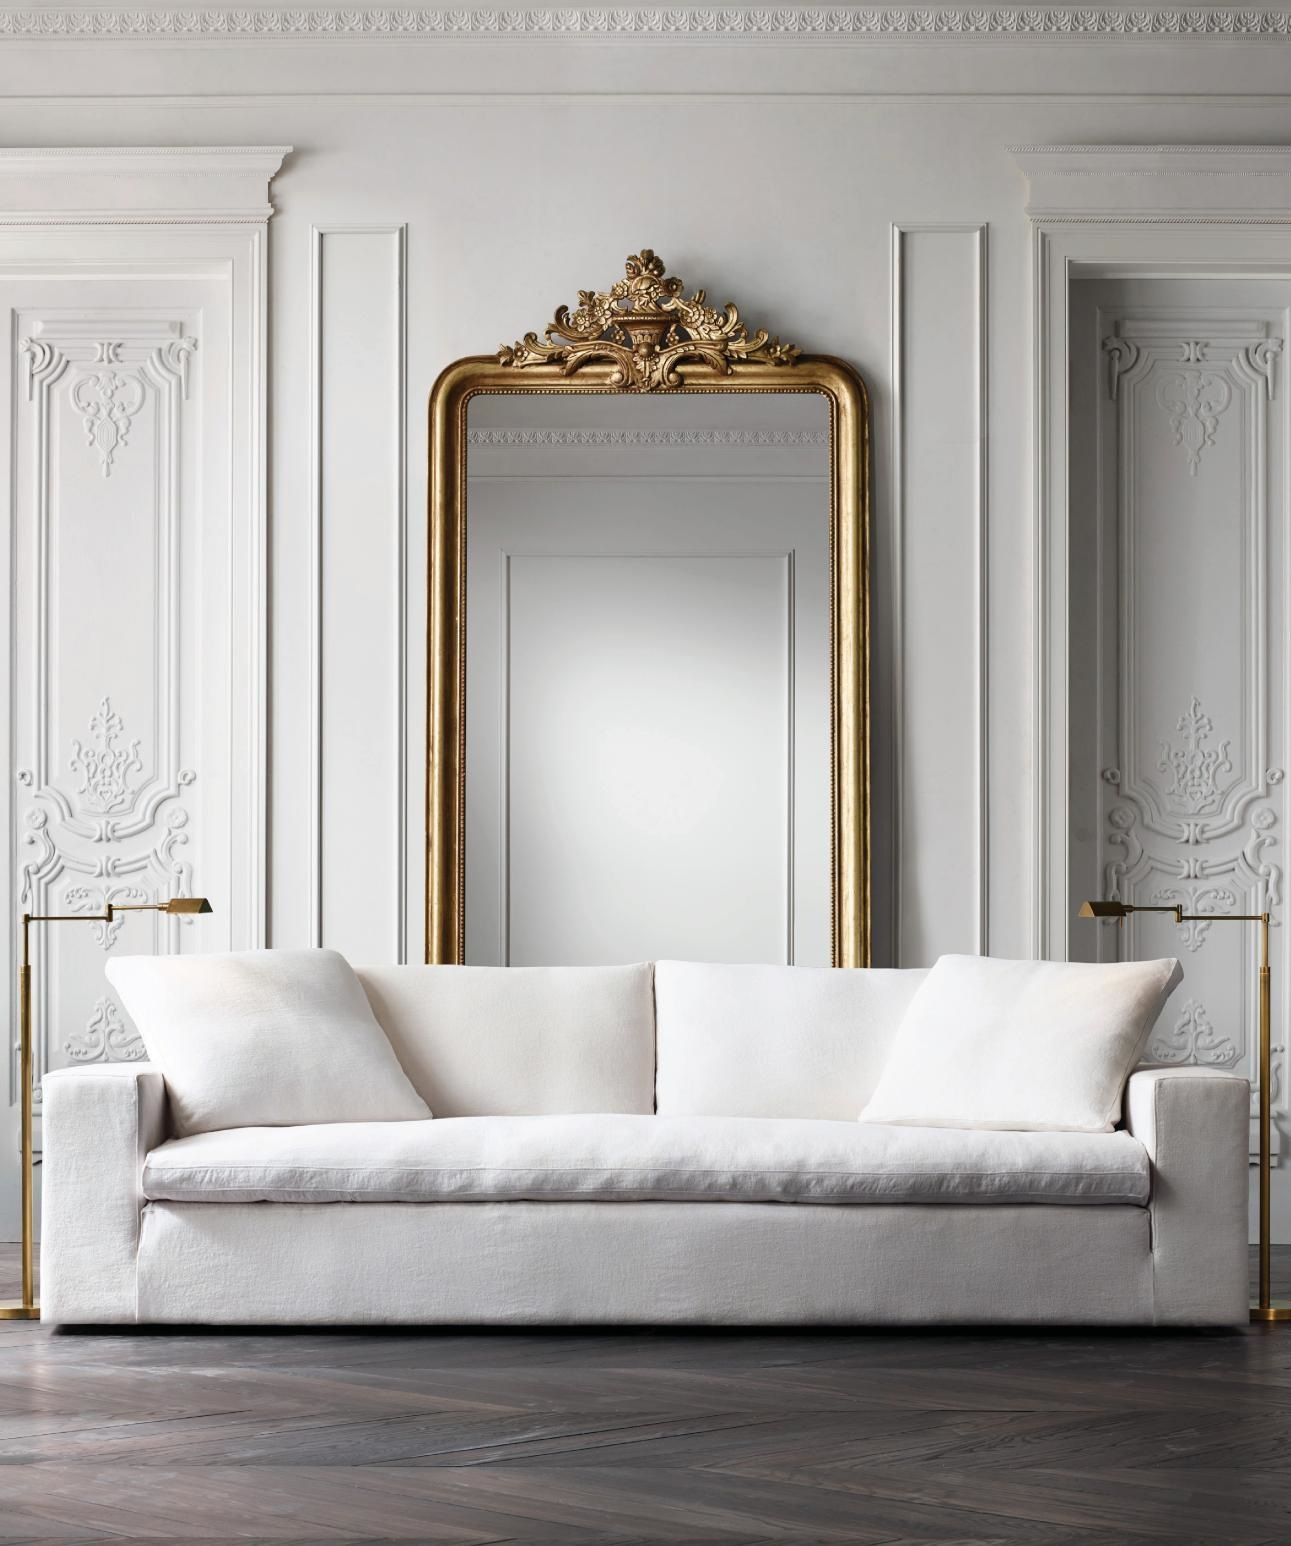 Baroque Sofa Uk Chesterfield Set Ebay Oversized Mirror Behind Modern Architecture And